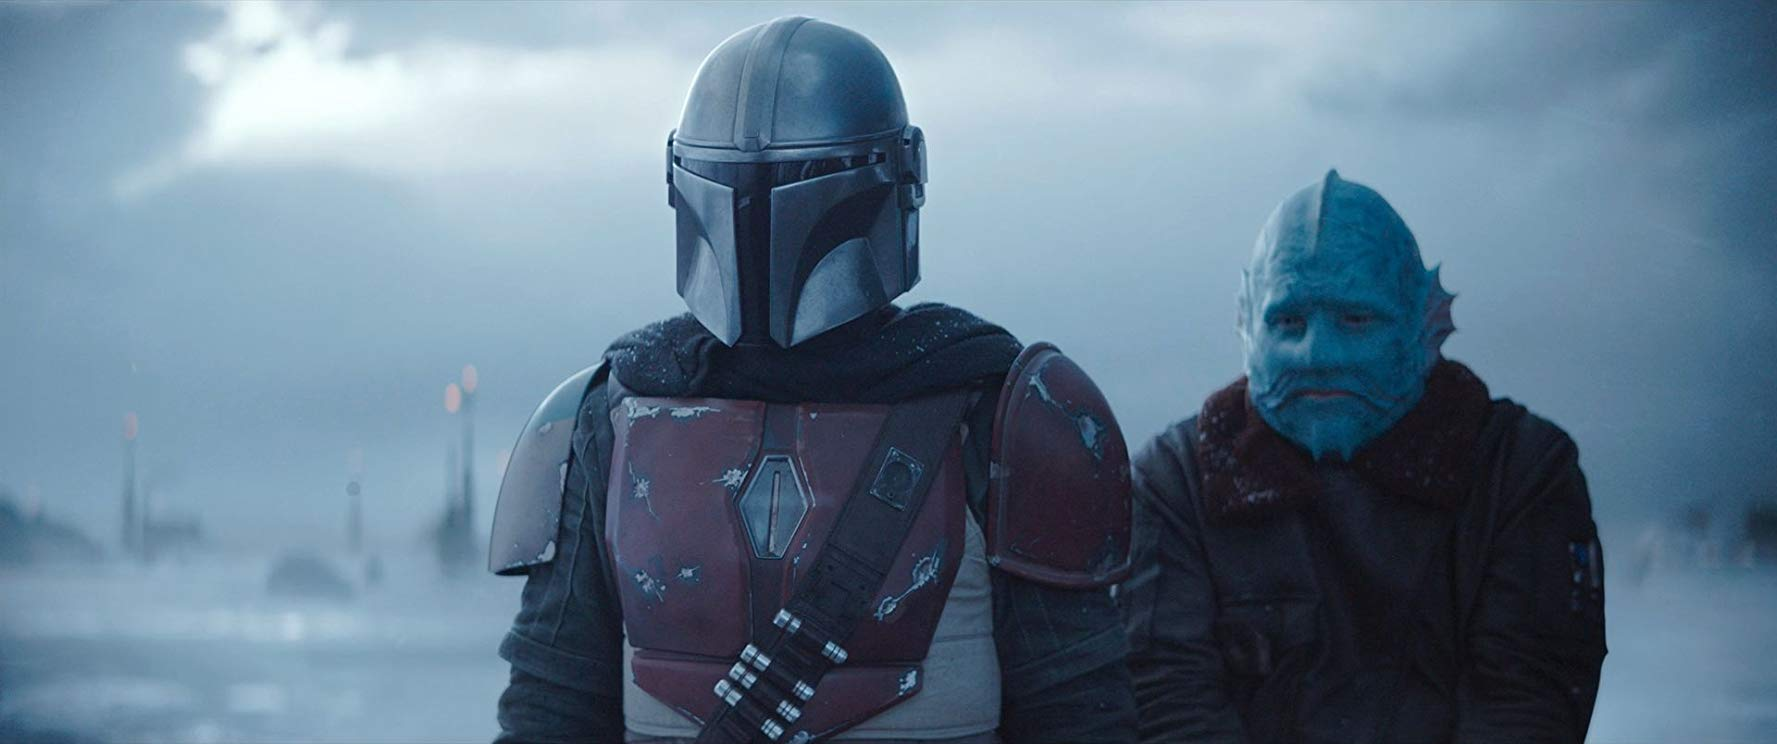 jon-favreau-critique-the-mandalorian